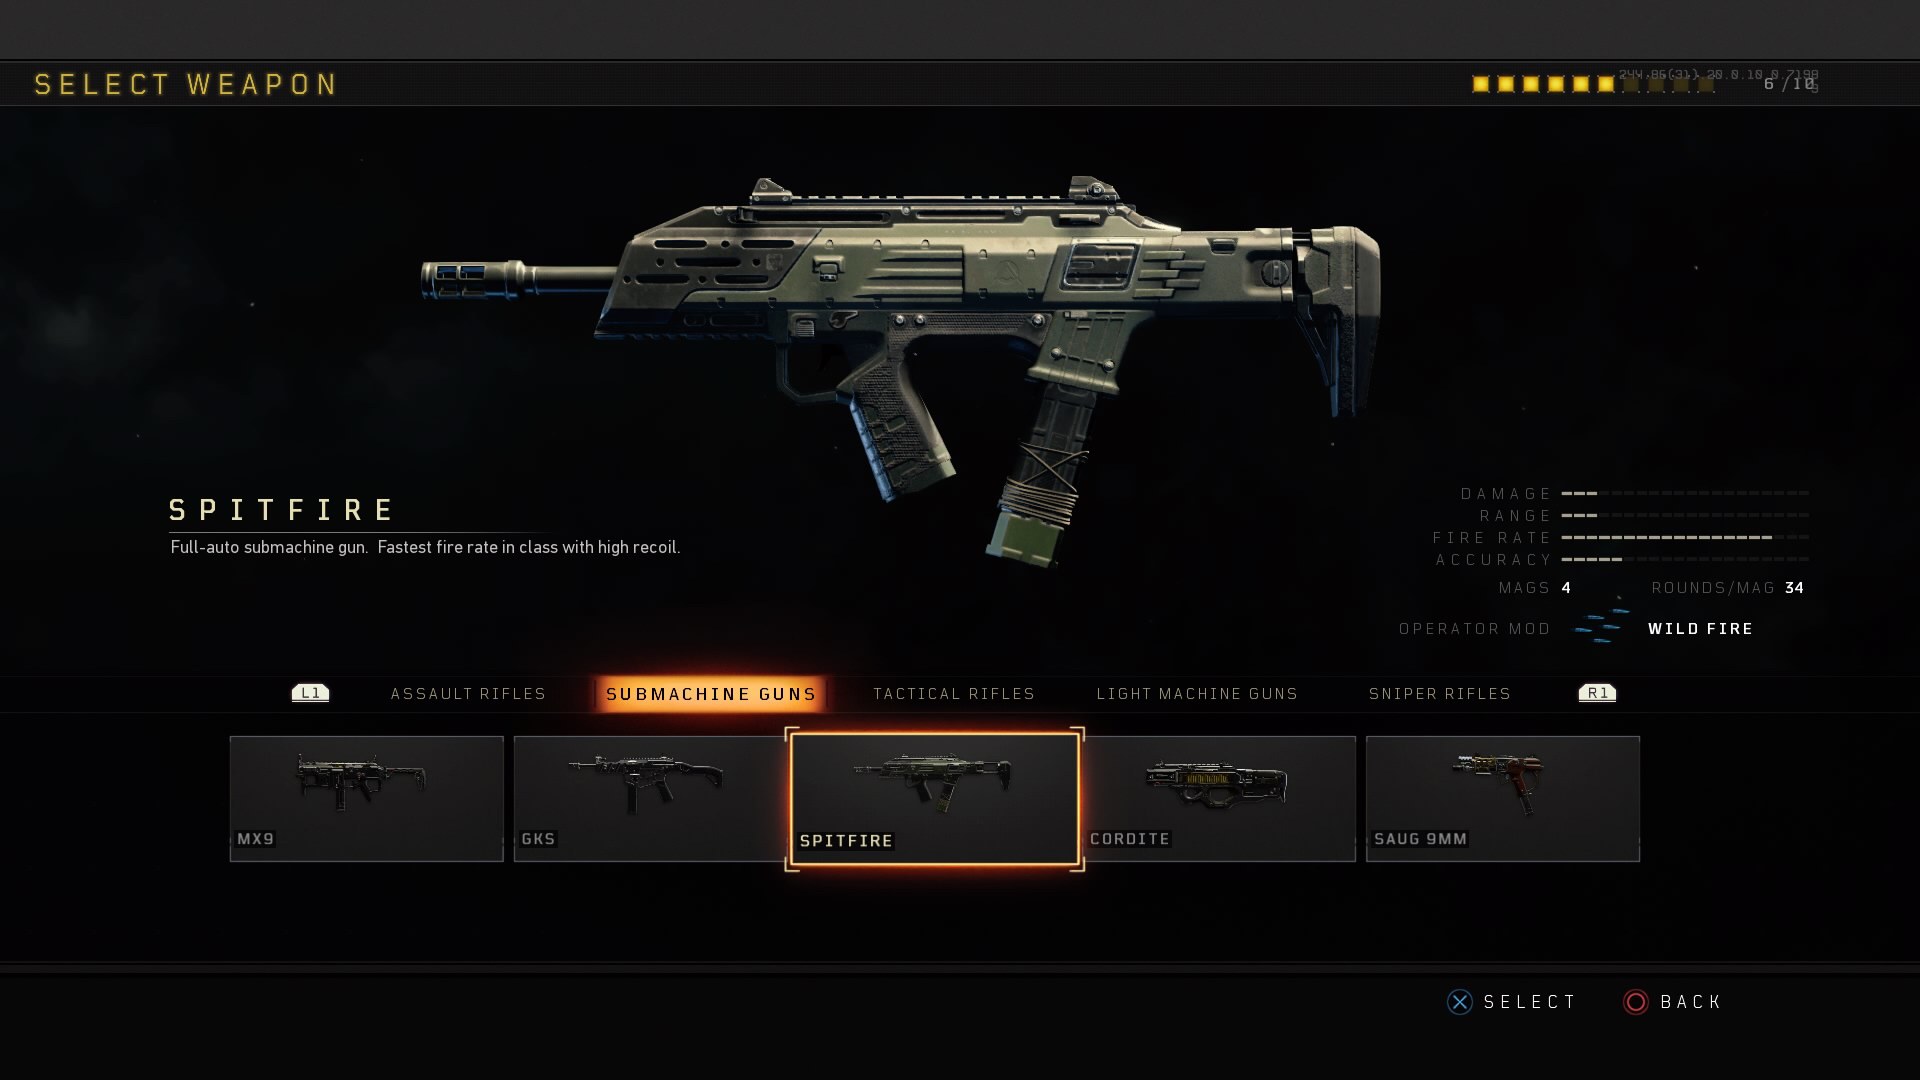 The Best Submachine Guns In Call Of Duty Black Ops 4 Dot Esports